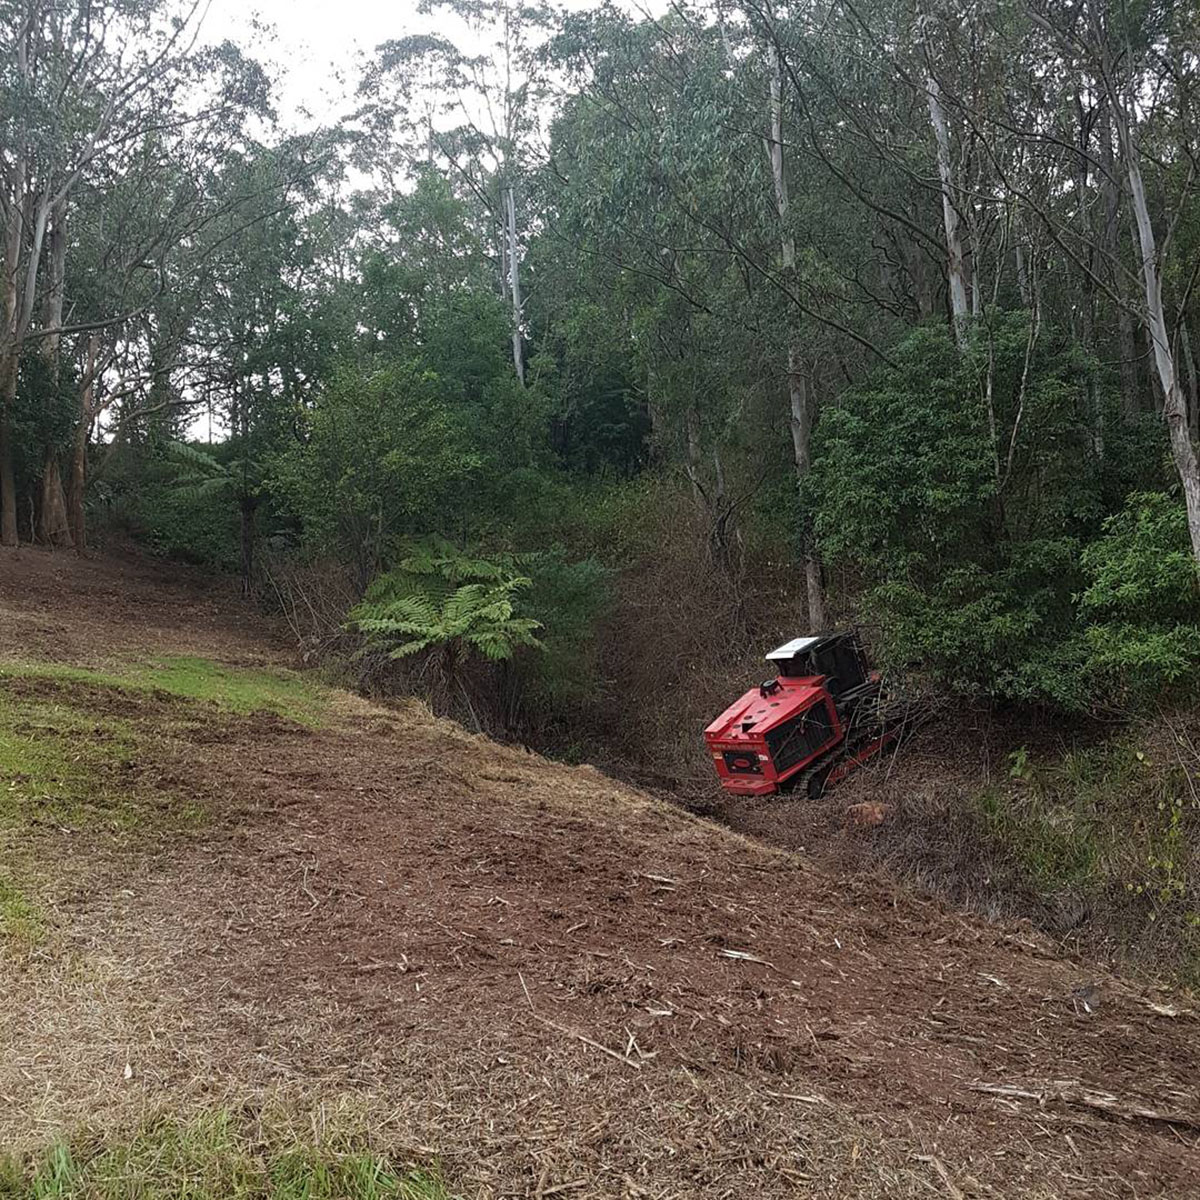 Sustainable Land Clearing Solutions Chipper on clearing site